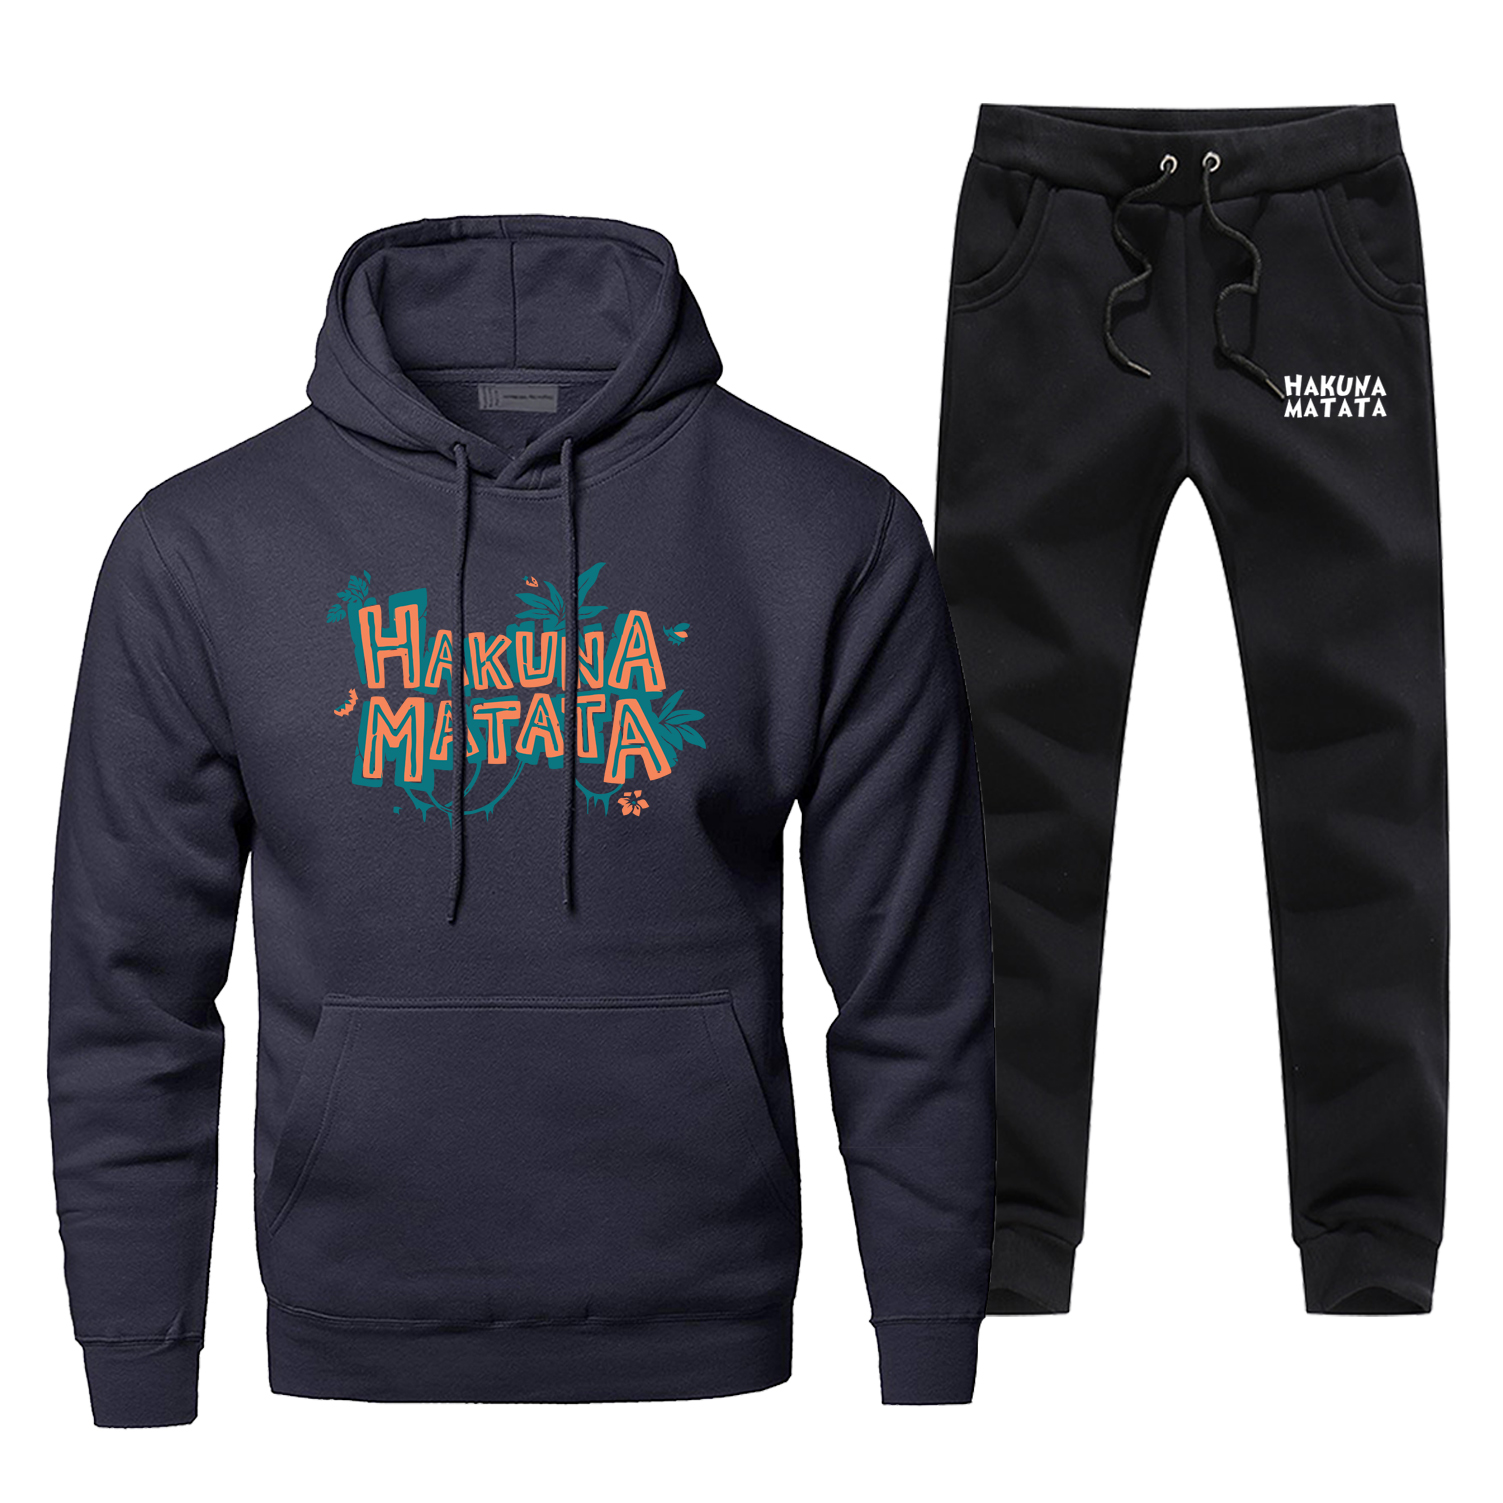 Hakuna Matata Fleece Hoodies Pants Sets Men Casual Lion King Sweatshirt Mens Fashion Harajuku Streetwea Sportswear Sweatpants